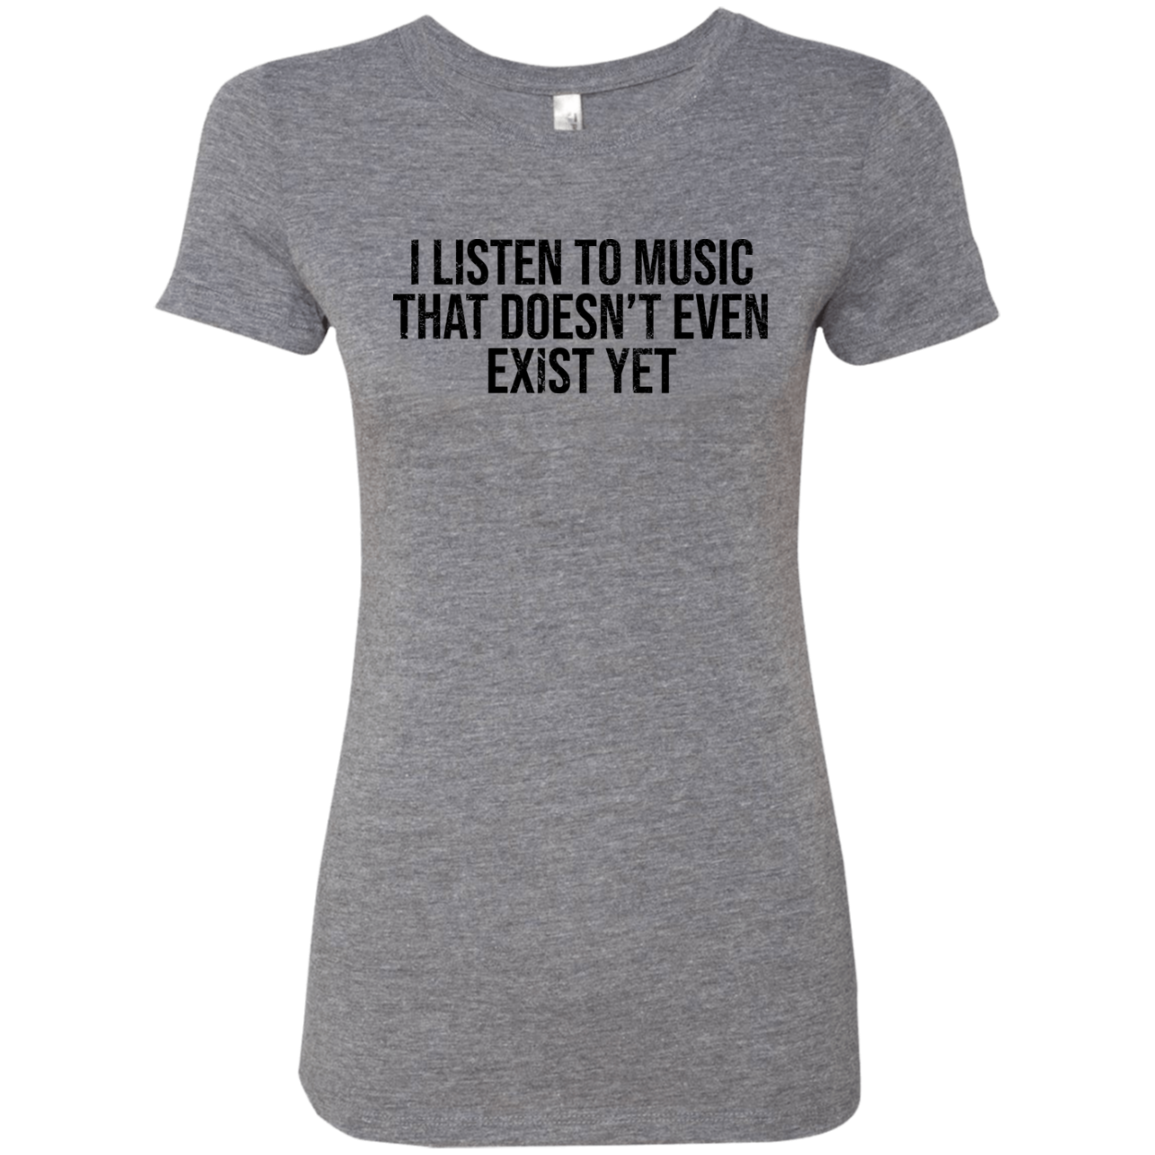 I Listen To Music That Doesn't Exist Yet Women's Classic Tee